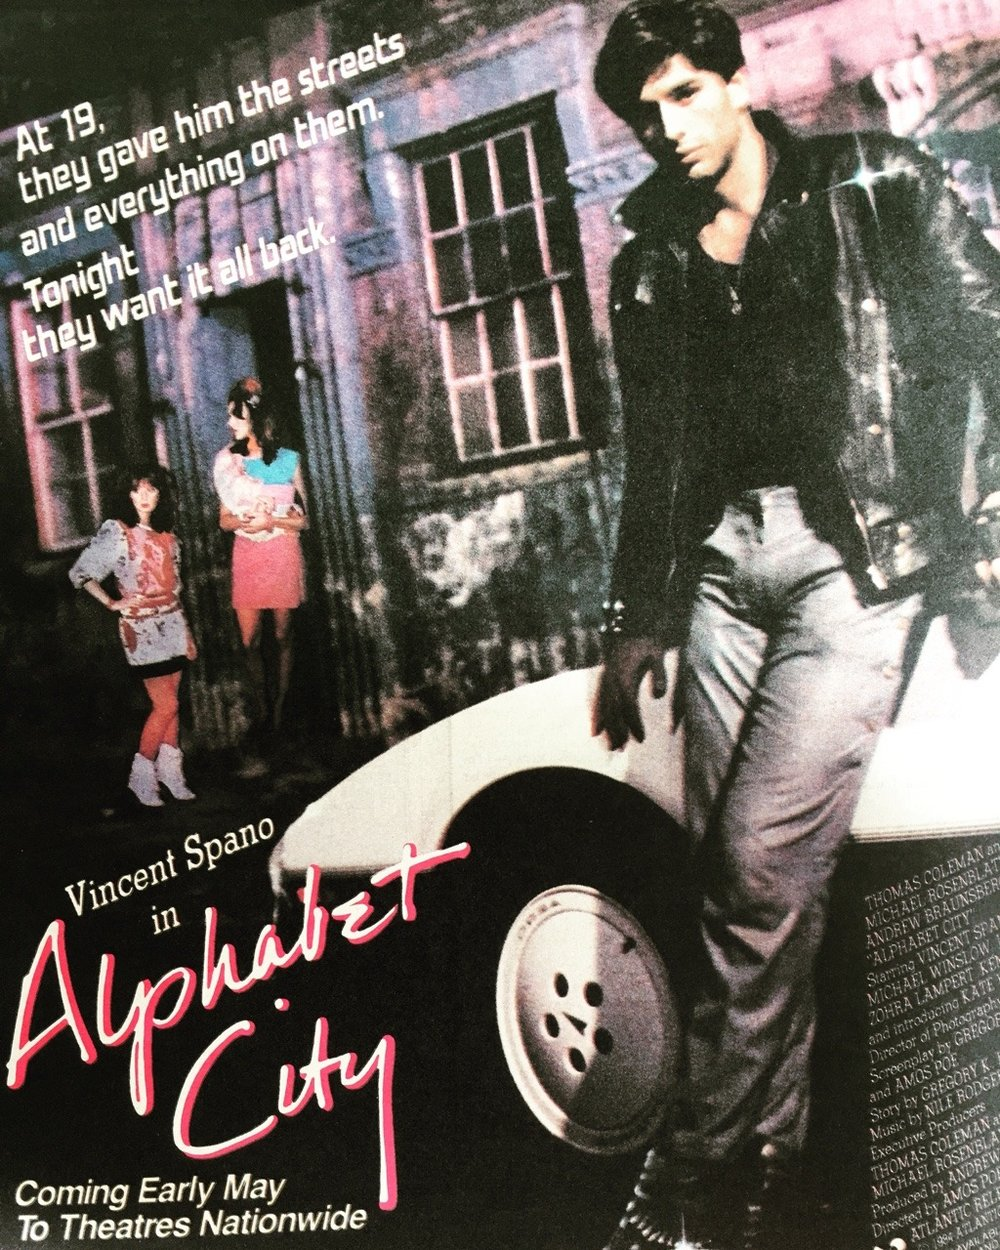 Alphabet City.  Rolling Stone. May 10, 1984.  Alphabet City was one of those gritty NYC crime dramas based in the pre-gentrified East Village. It was produced by Amos Poe, who also directed the 1976 classic punk documentary, The Blank Generation.